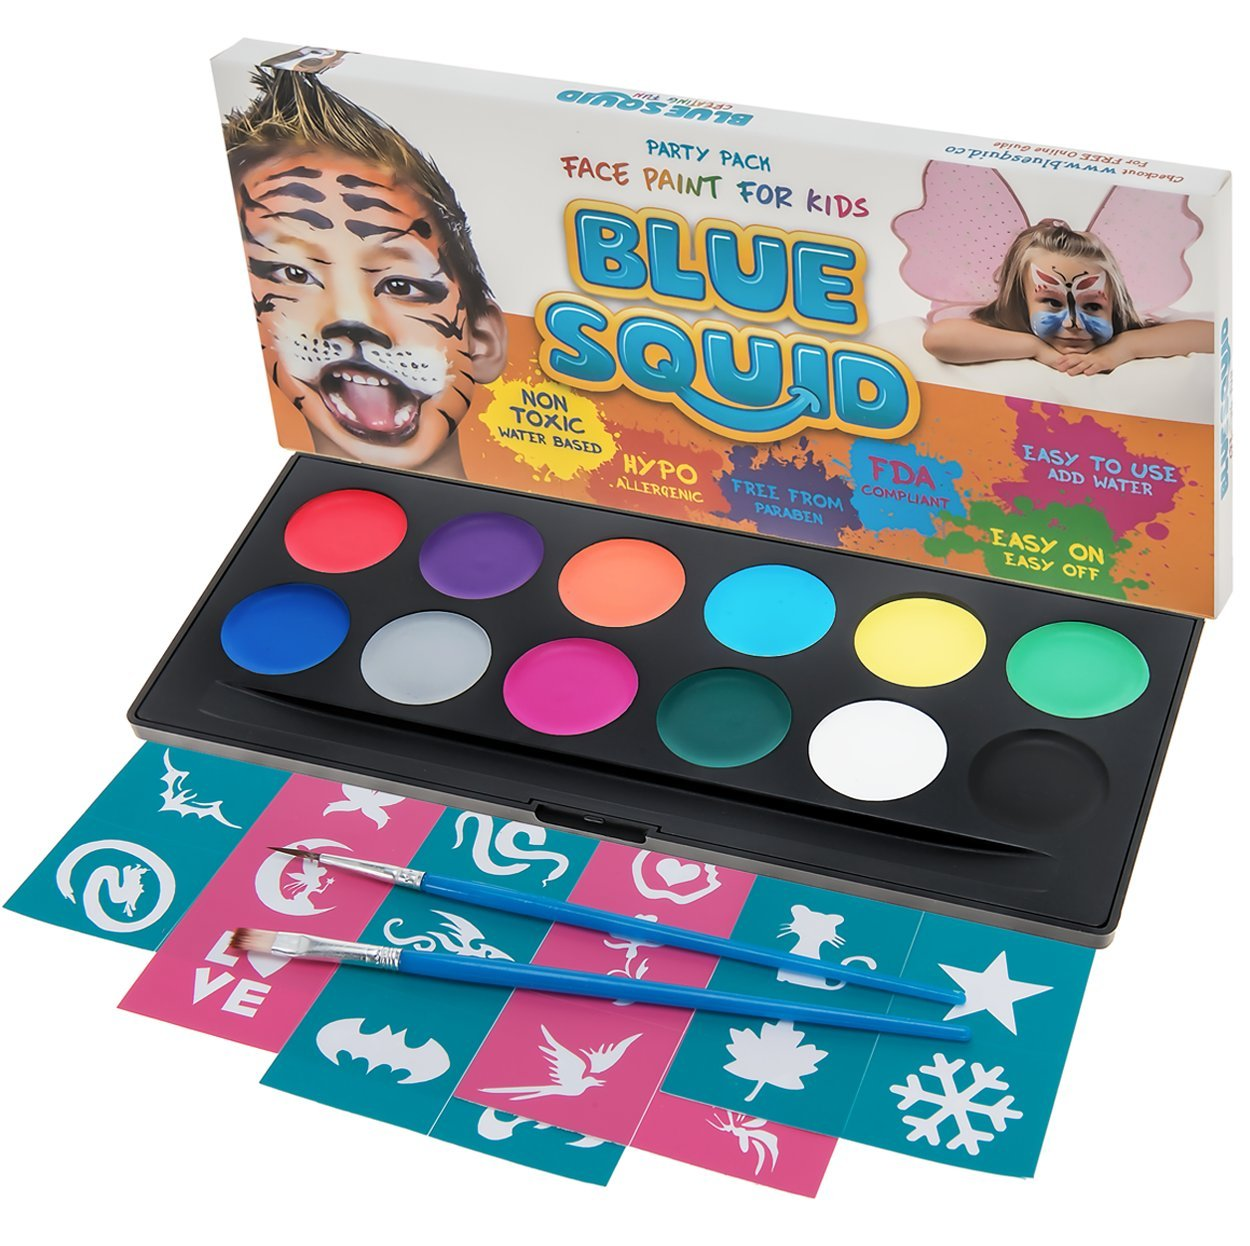 Blue Squid Face Paint for Kids | 12 Colors, 30 Stencils, 2 Brushes | Best Value Face Painting Set in Strong Cosmetics Case| Quality Vibrant Water Based Safe Non-Toxic Vegan | +BONUS Free Online Tutori